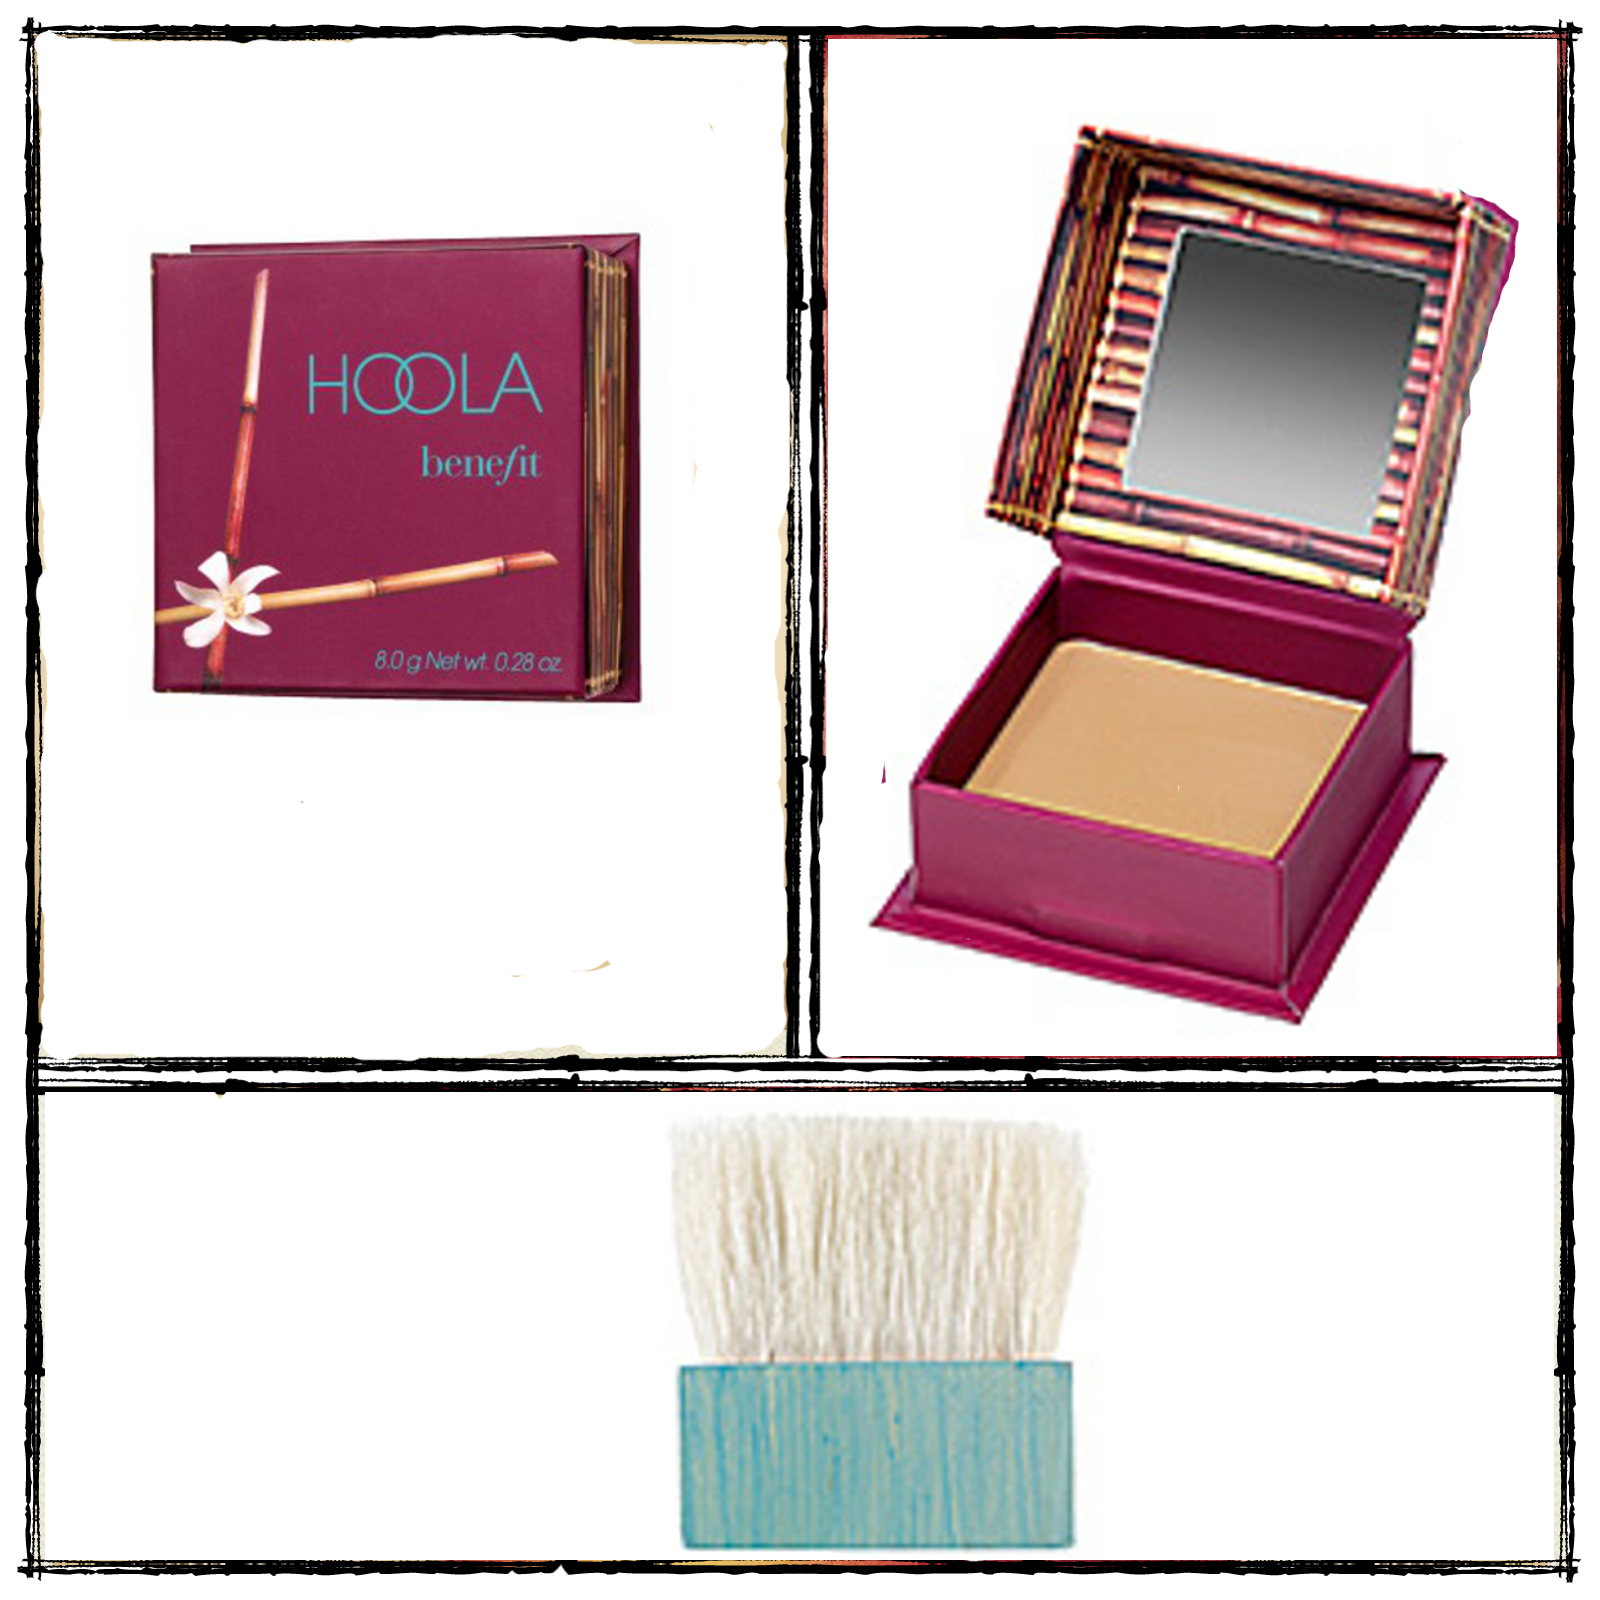 Sayers Style Bourjois Chocolate Bronzer V S Benefit Hoola